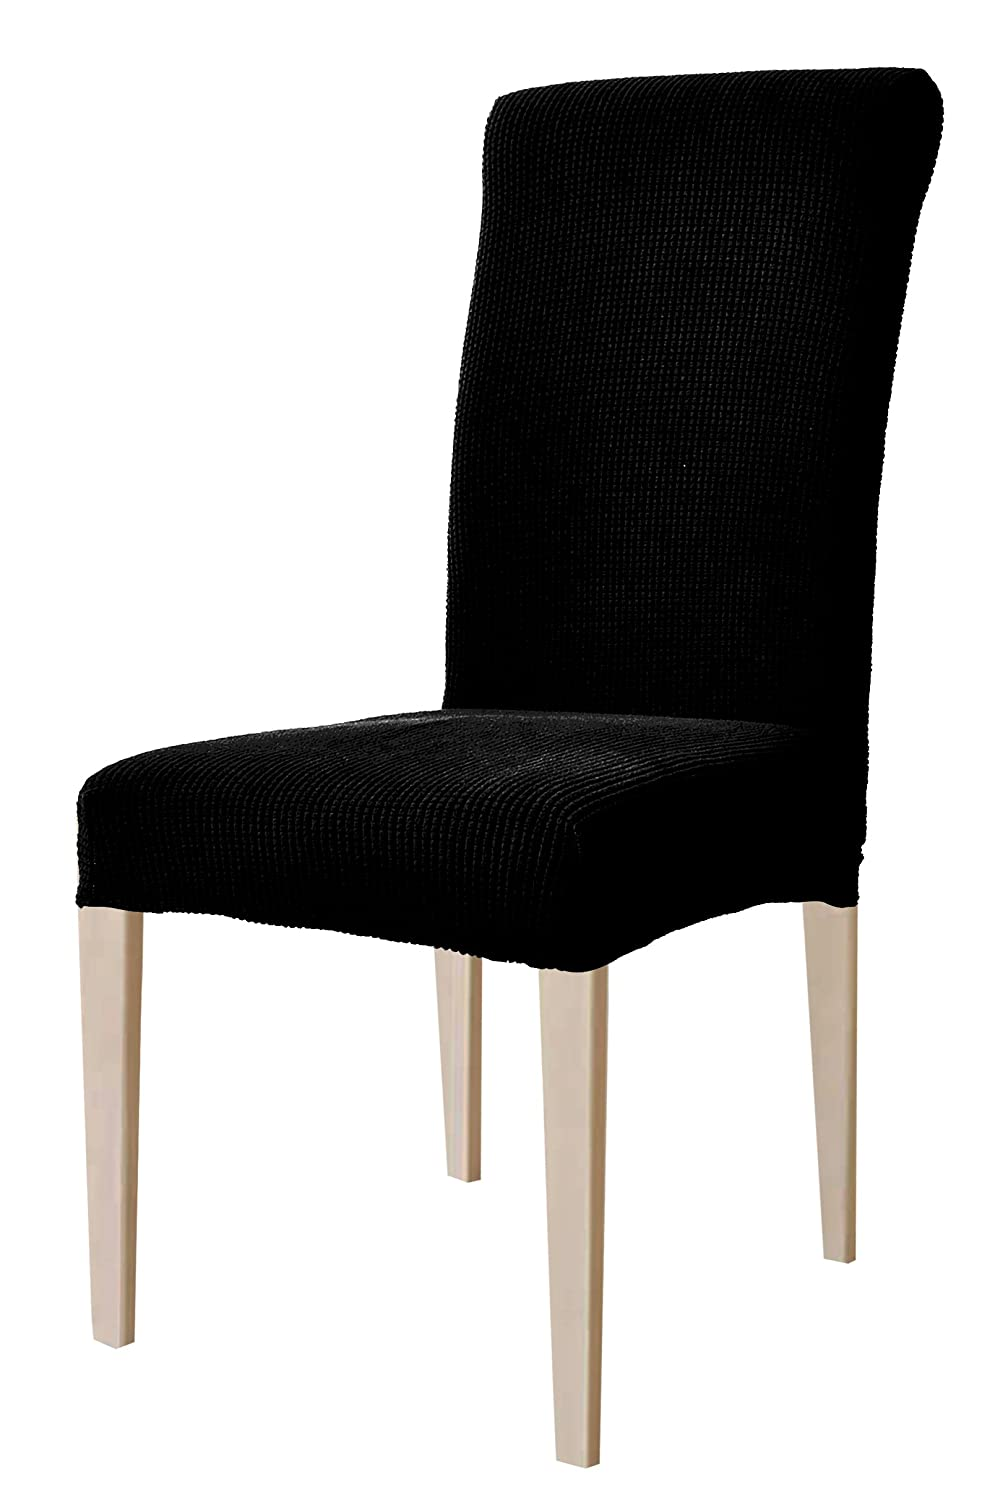 DyFun Jacquard Spandex Stretch Dining Room Chair Slipcovers (2, Coffee) Ltd chair cover